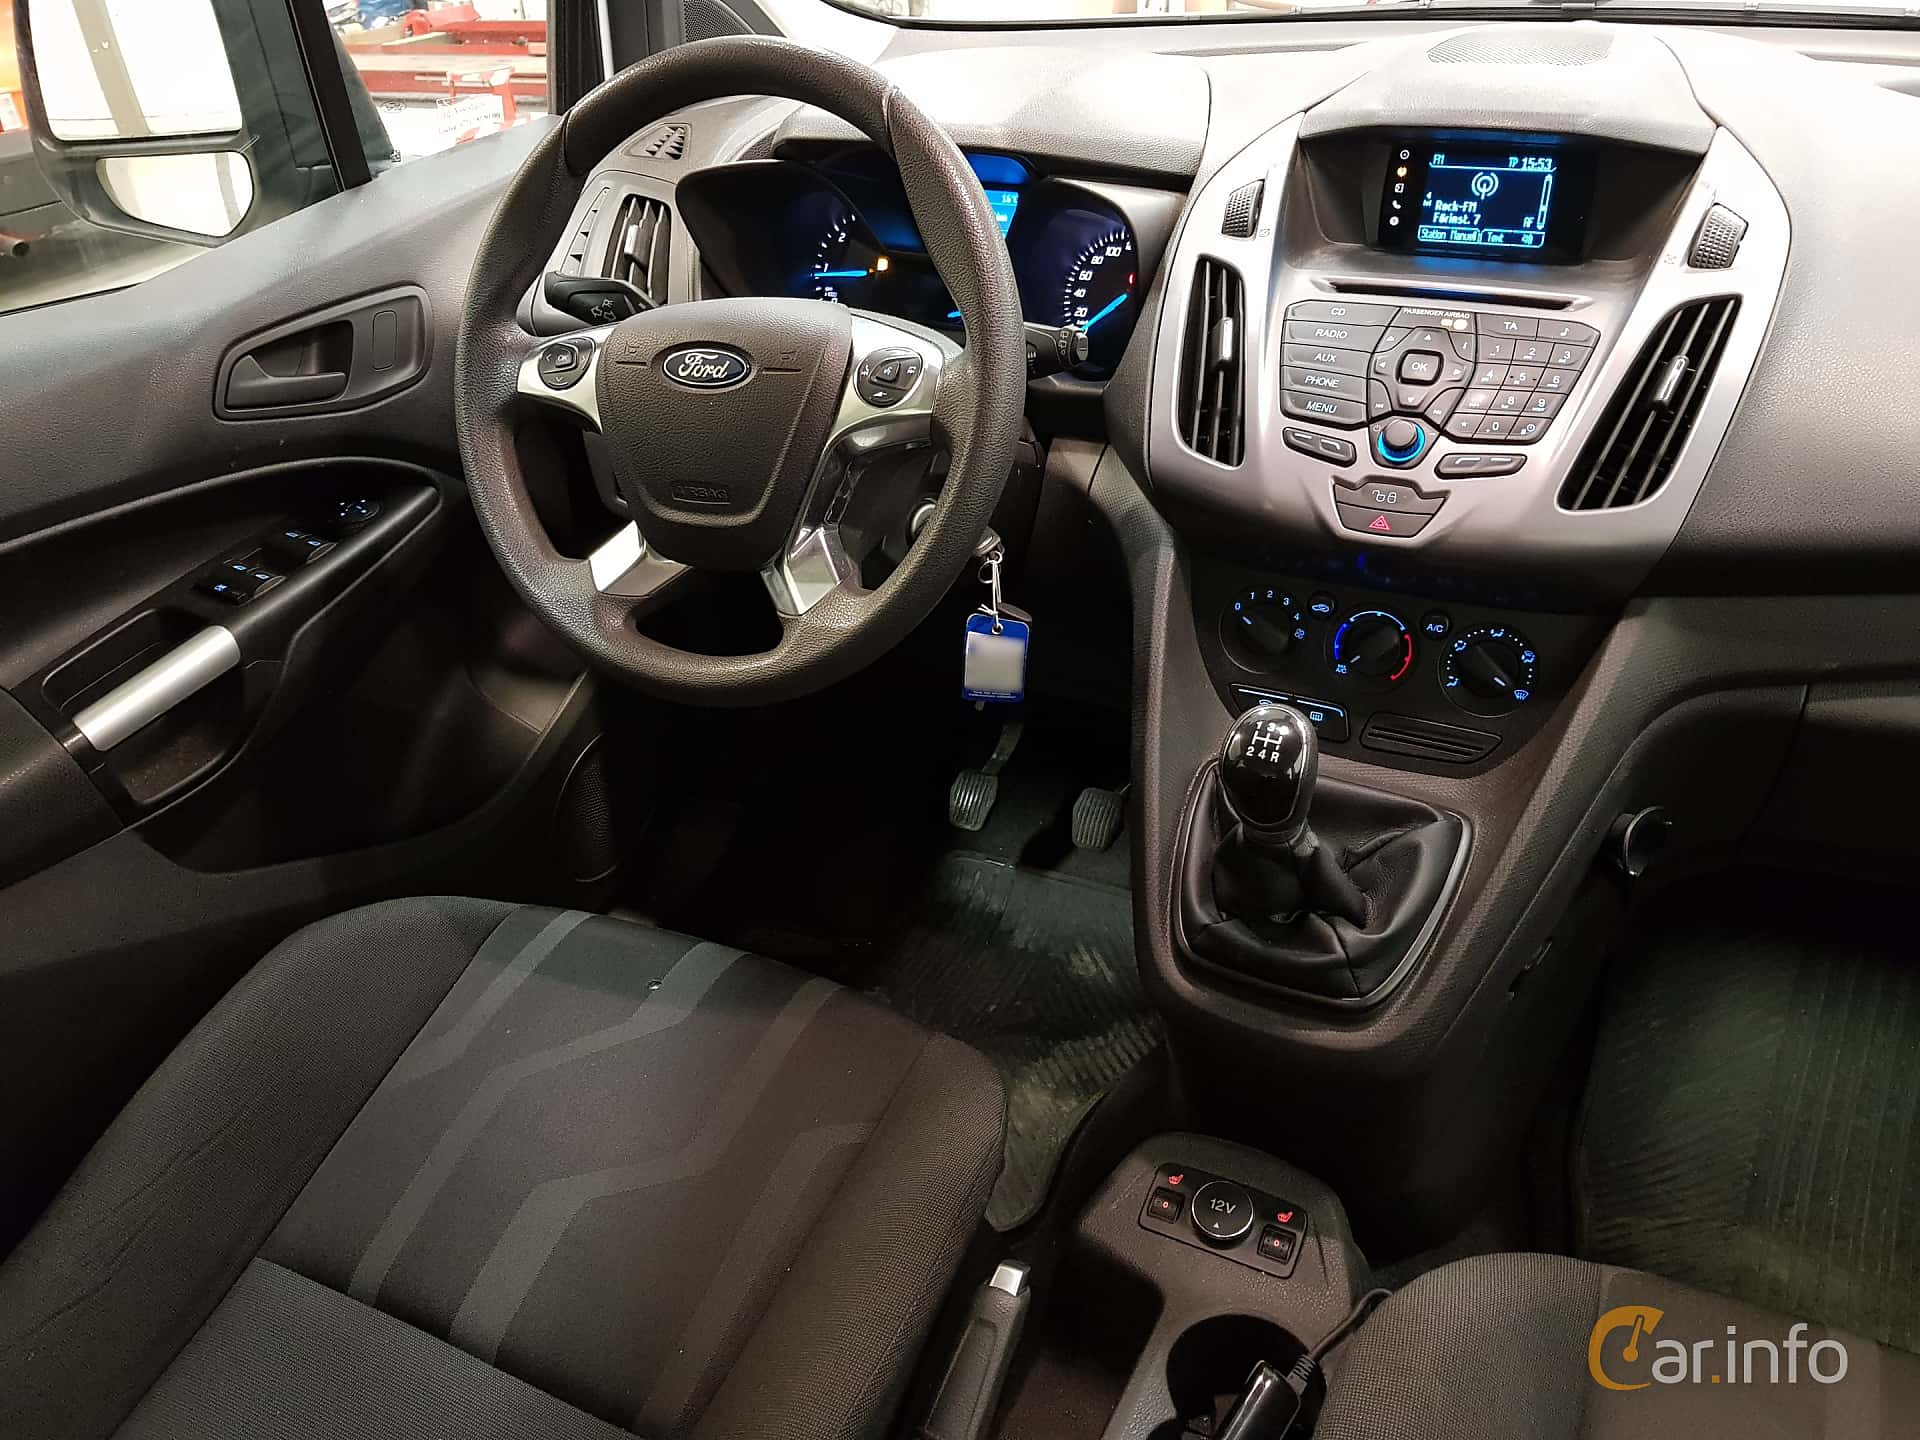 Ford Tourneo Connect 1.6 TDCi Manual, 95hp, 2015